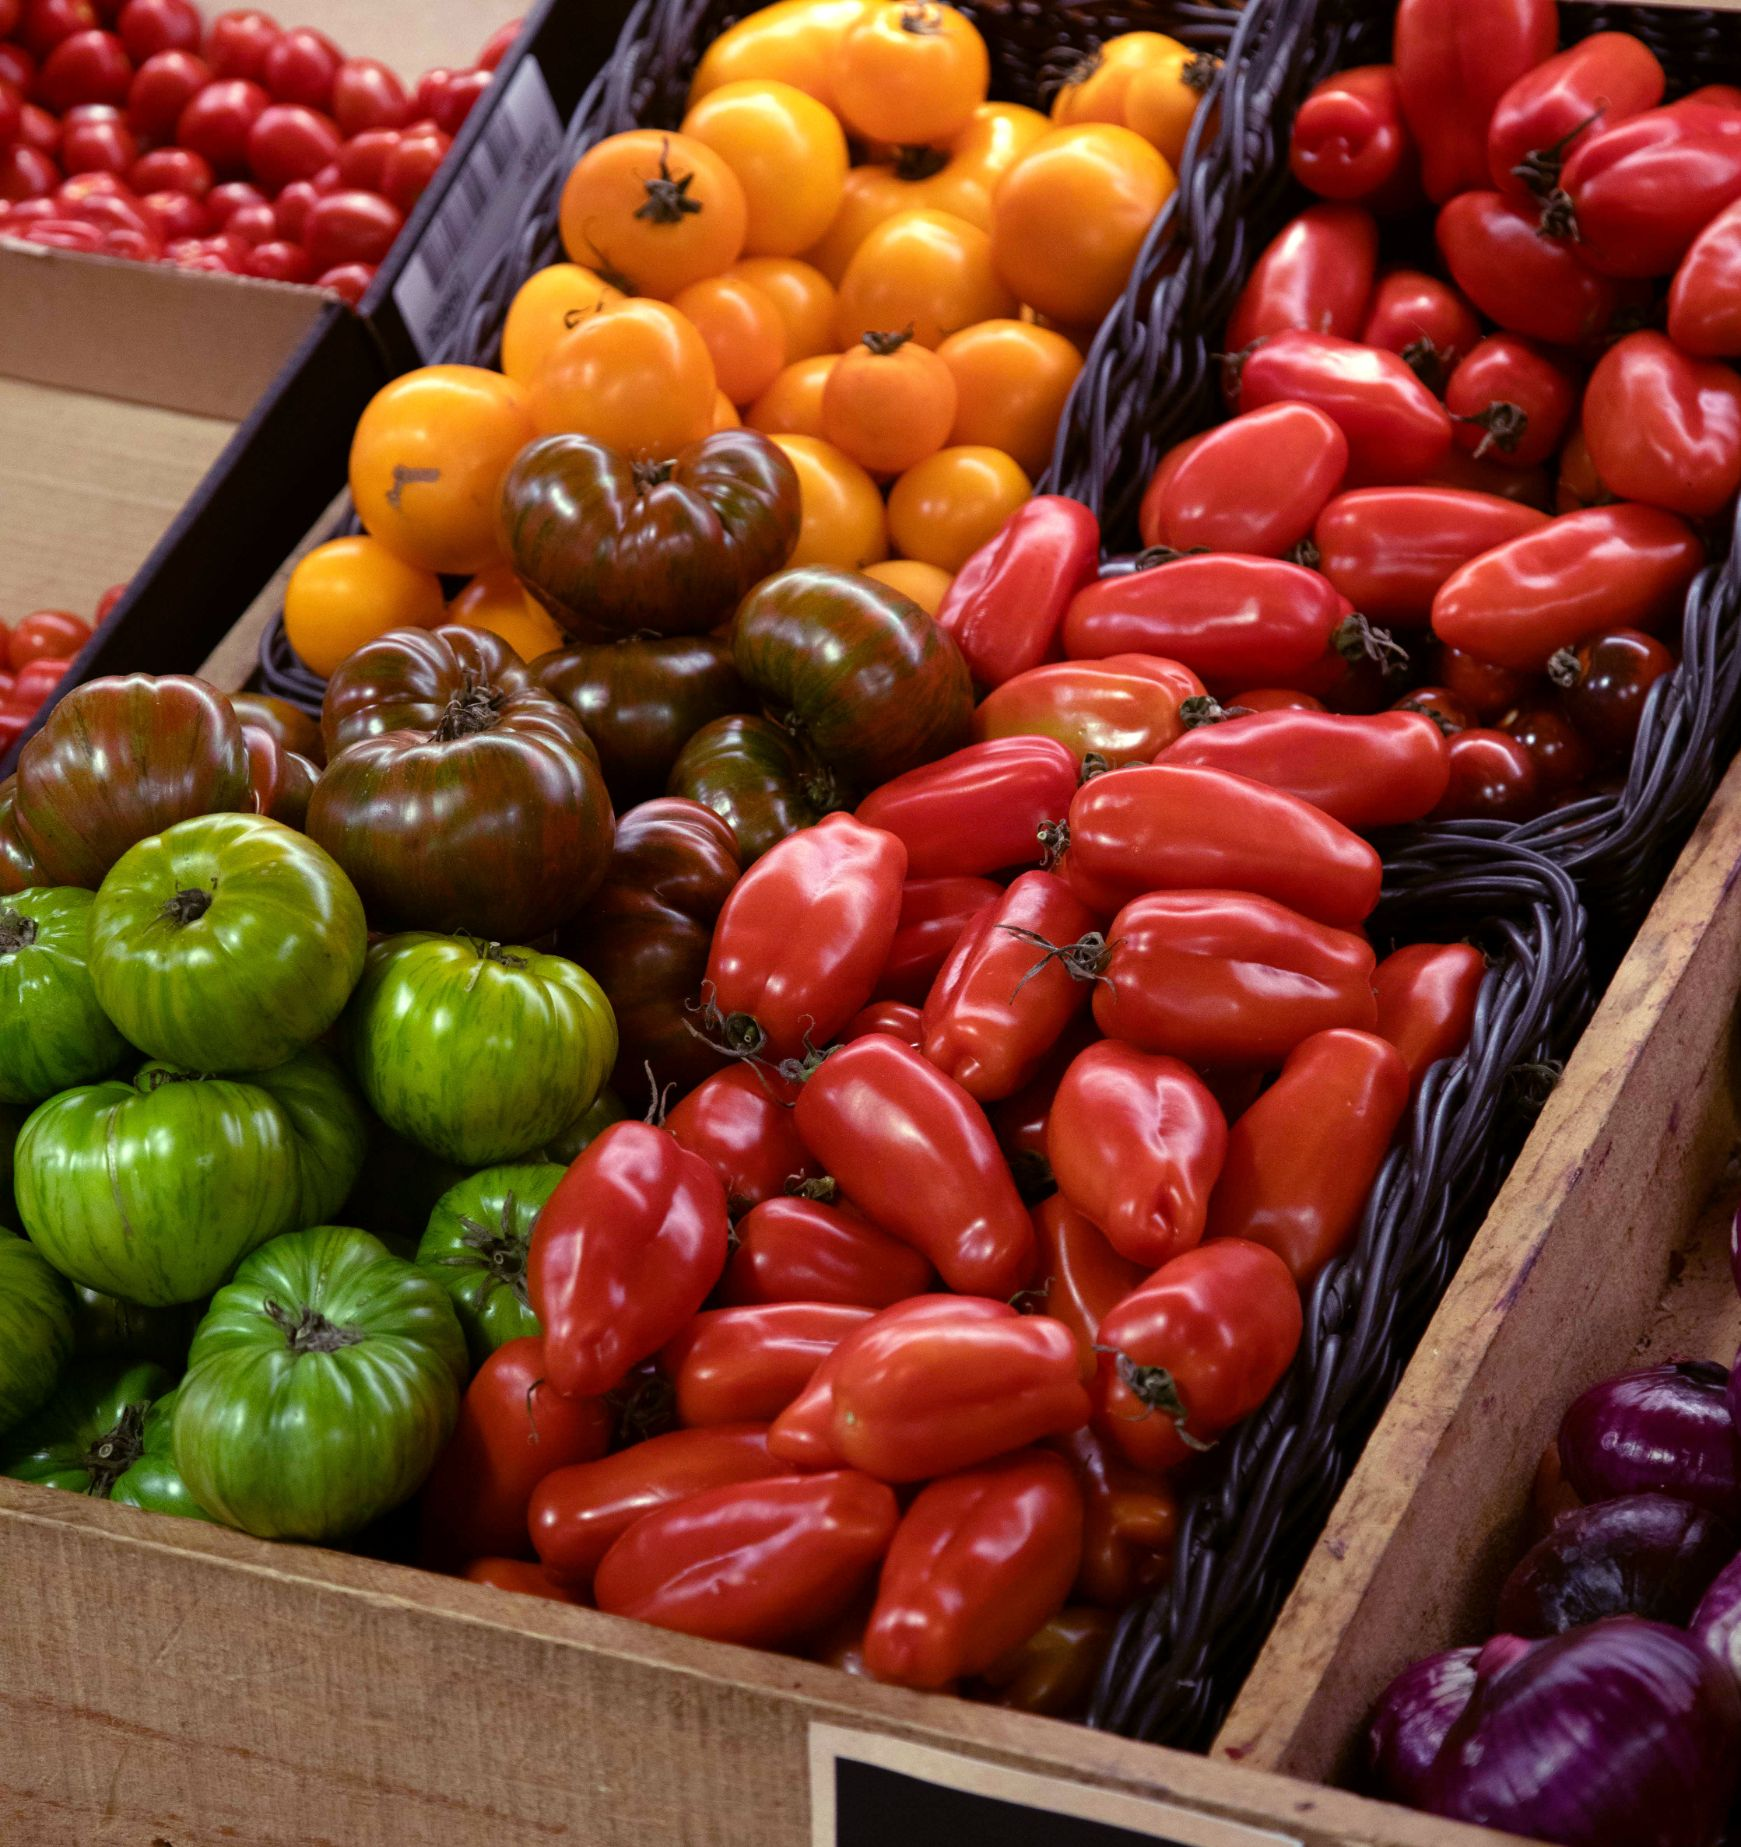 Tomatoes on shelf in grocery store